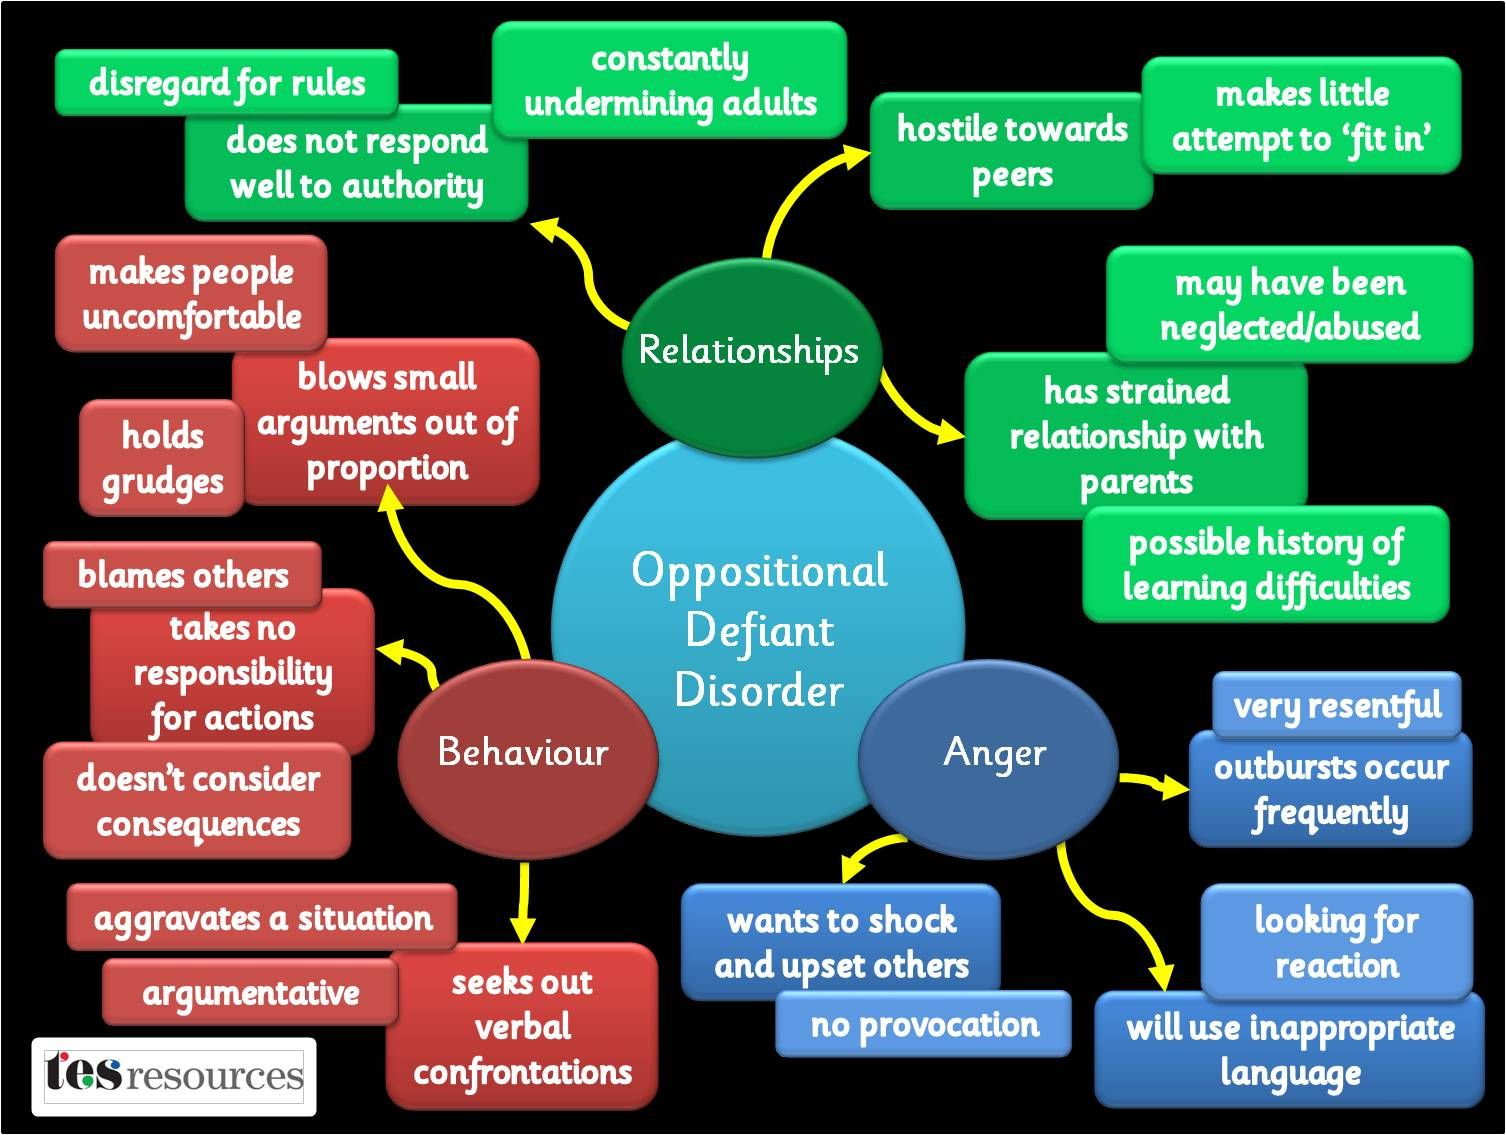 Oppositional Defiant Disorder Behavior Chart This Gives A Visual Of How ODD Works With Person It Can Help You Understand The Different Aspects